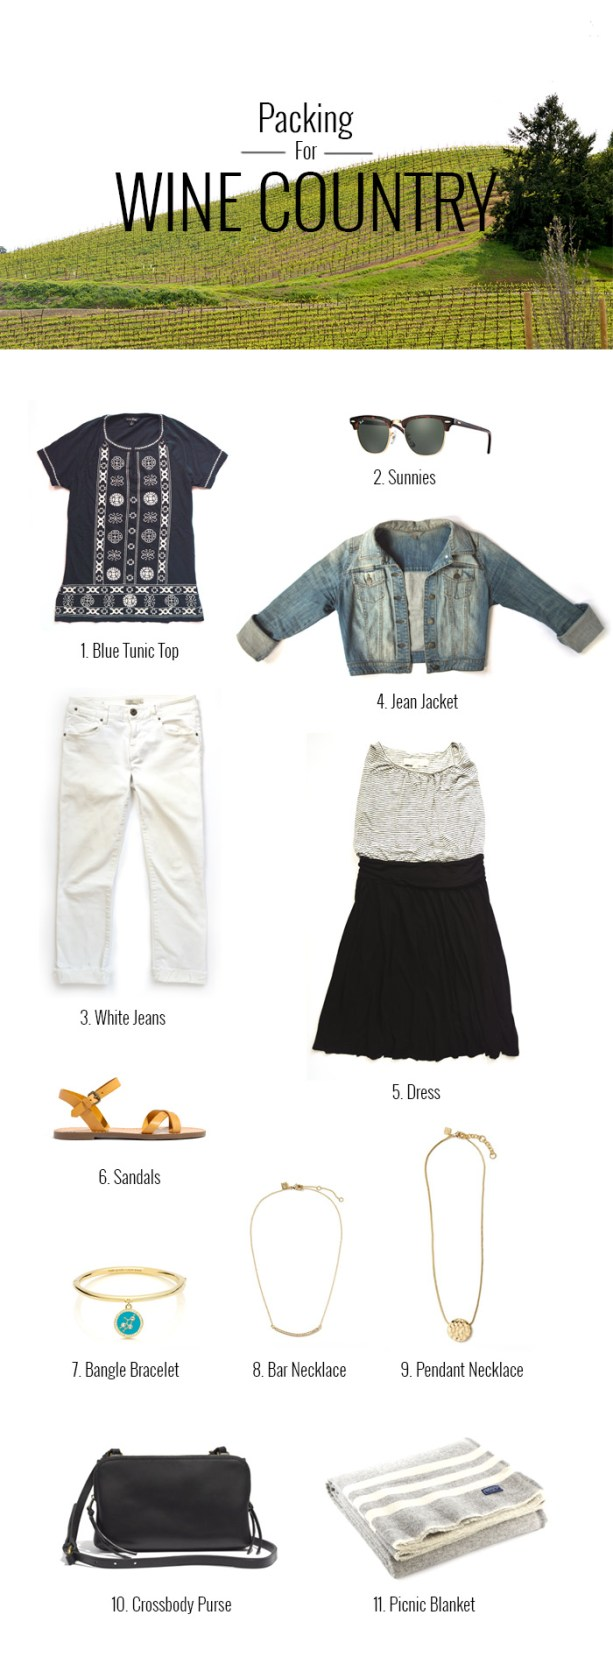 Packing List for a Weekend in Wine Country // Nattie on the Road